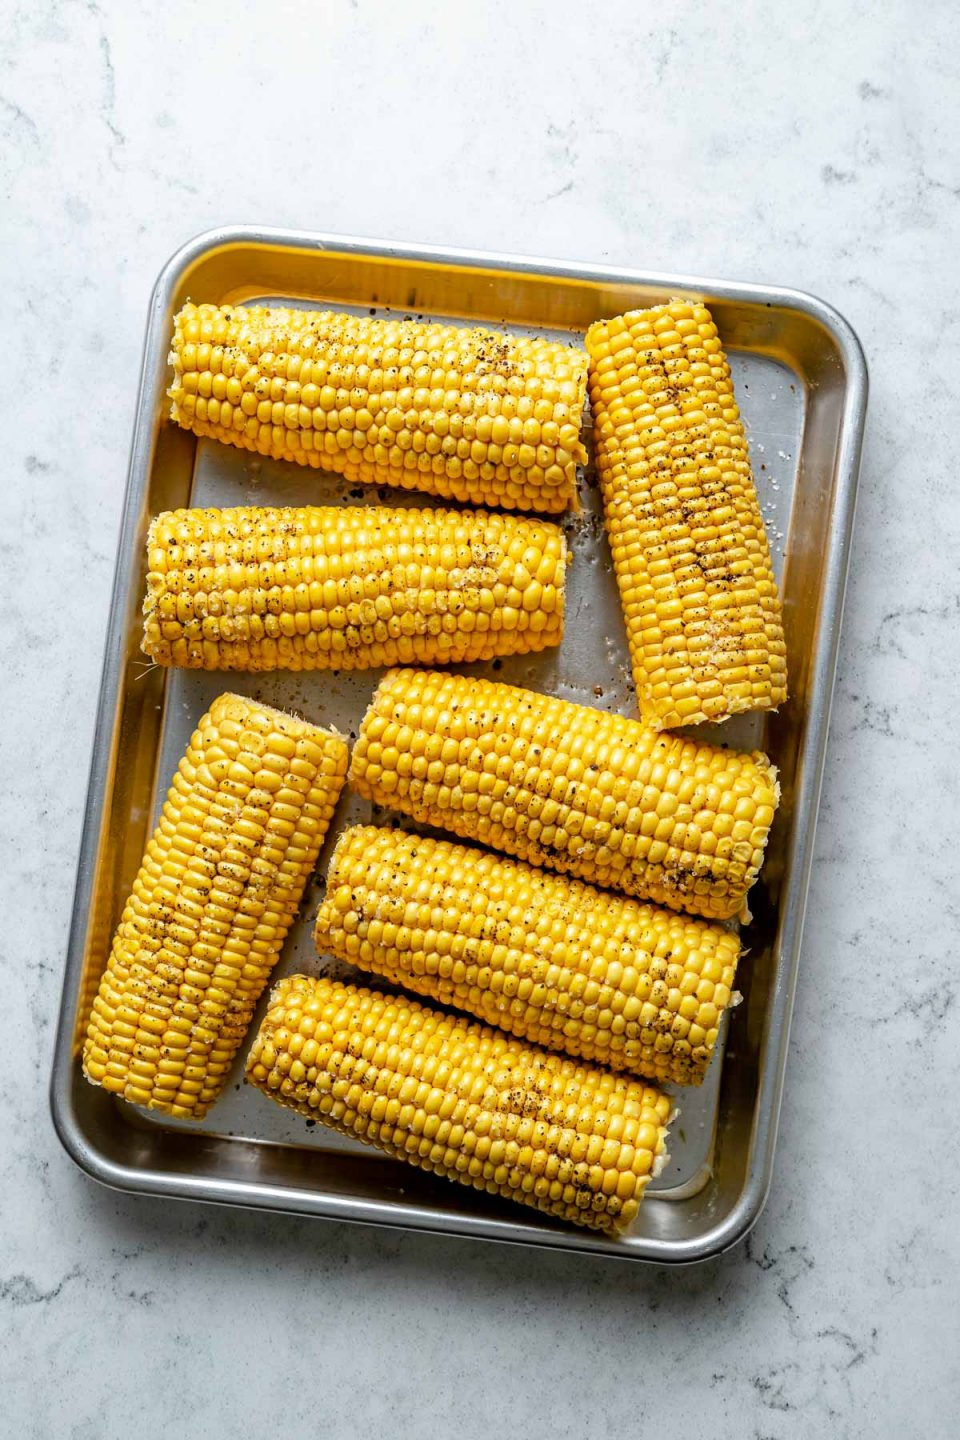 Multiple pieces of fresh & uncooked sweet corn seasoned with oil and ground black pepper lie on an aluminum baking sheet. The baking sheet sits on top of a white & gray marble surface.